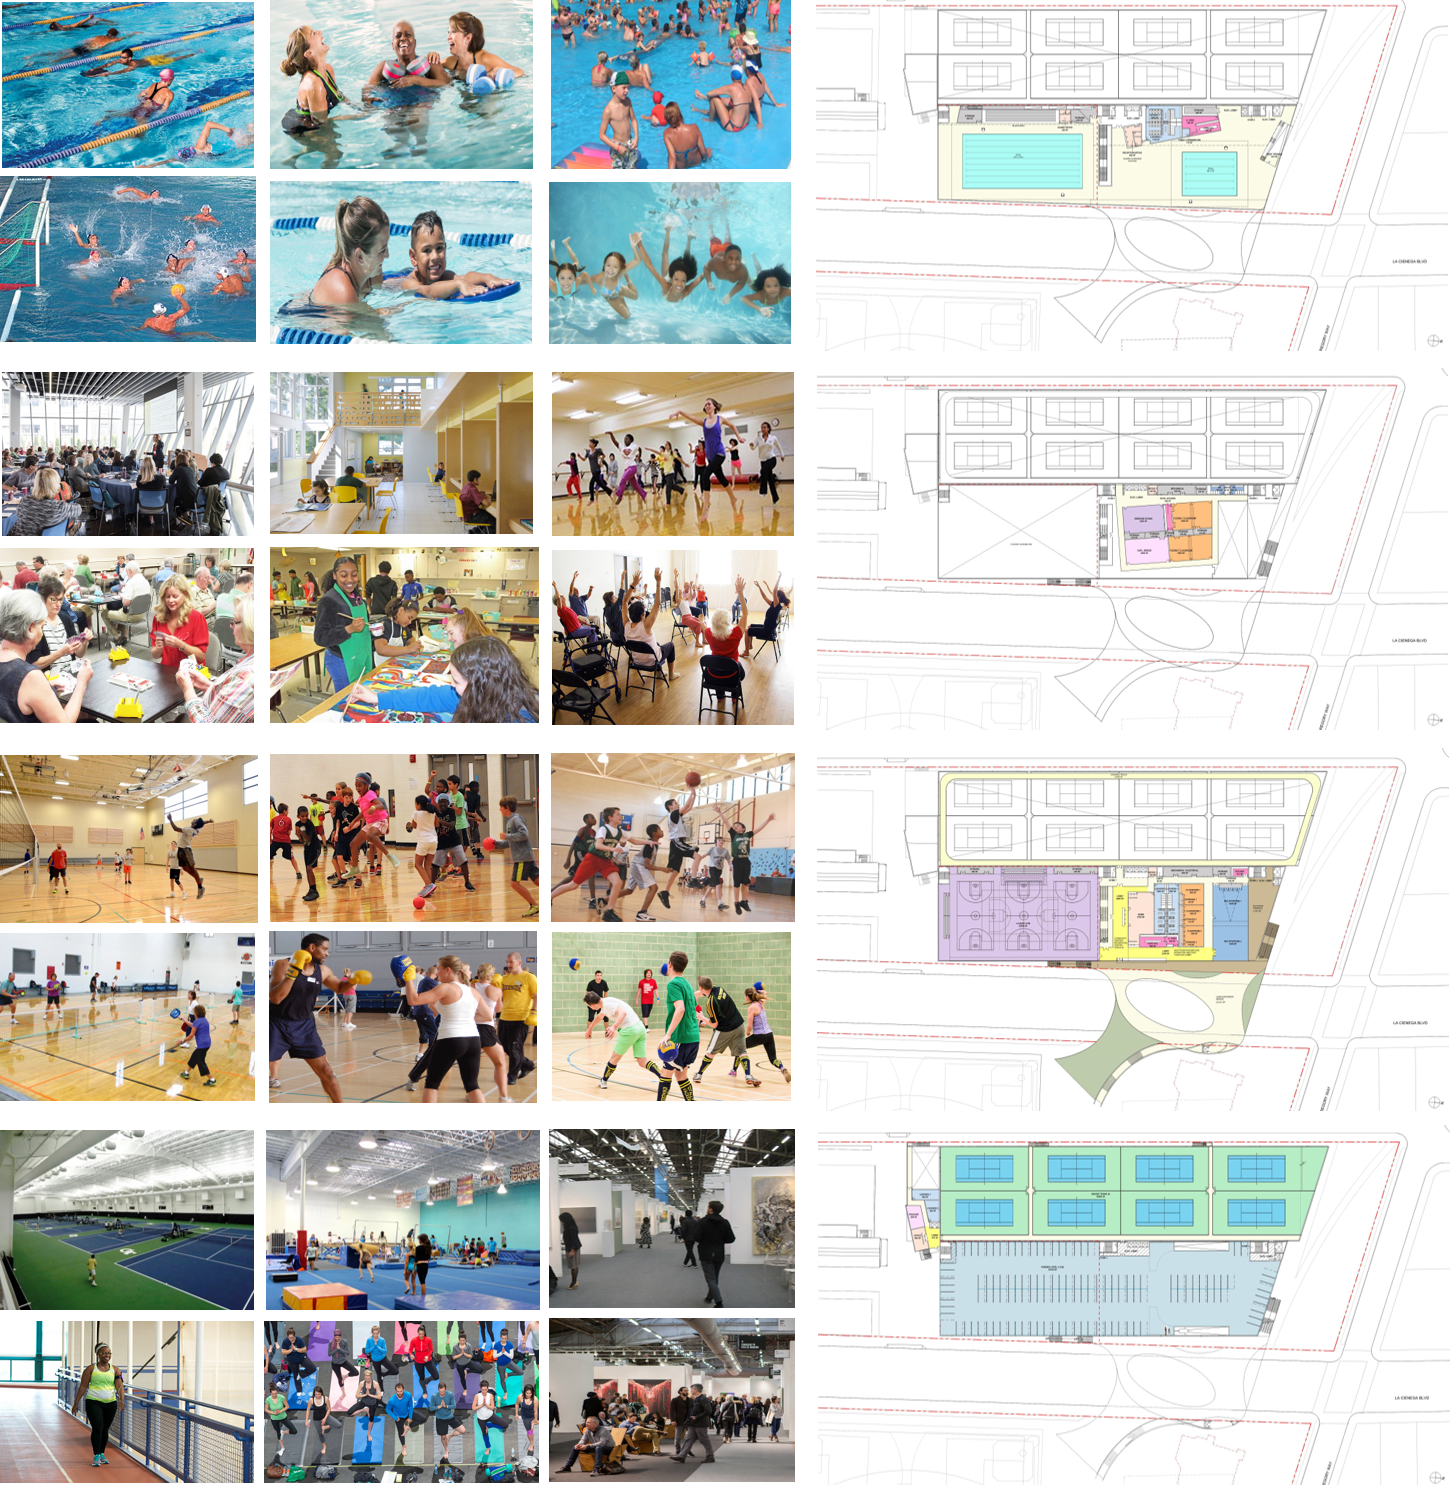 INTEGRATION OF COMMUNITY The complex of recreation and community facilities planned for the redevelopment of La Cienega park will put in one place an array of activities so broad and so rich in social interaction that the place will become another center of life for the Beverly Hills community apart and distinct from its shopping district, performing arts center or even civic center. (Above top to bottom: aquatics, community center, recreation center, tennis center).